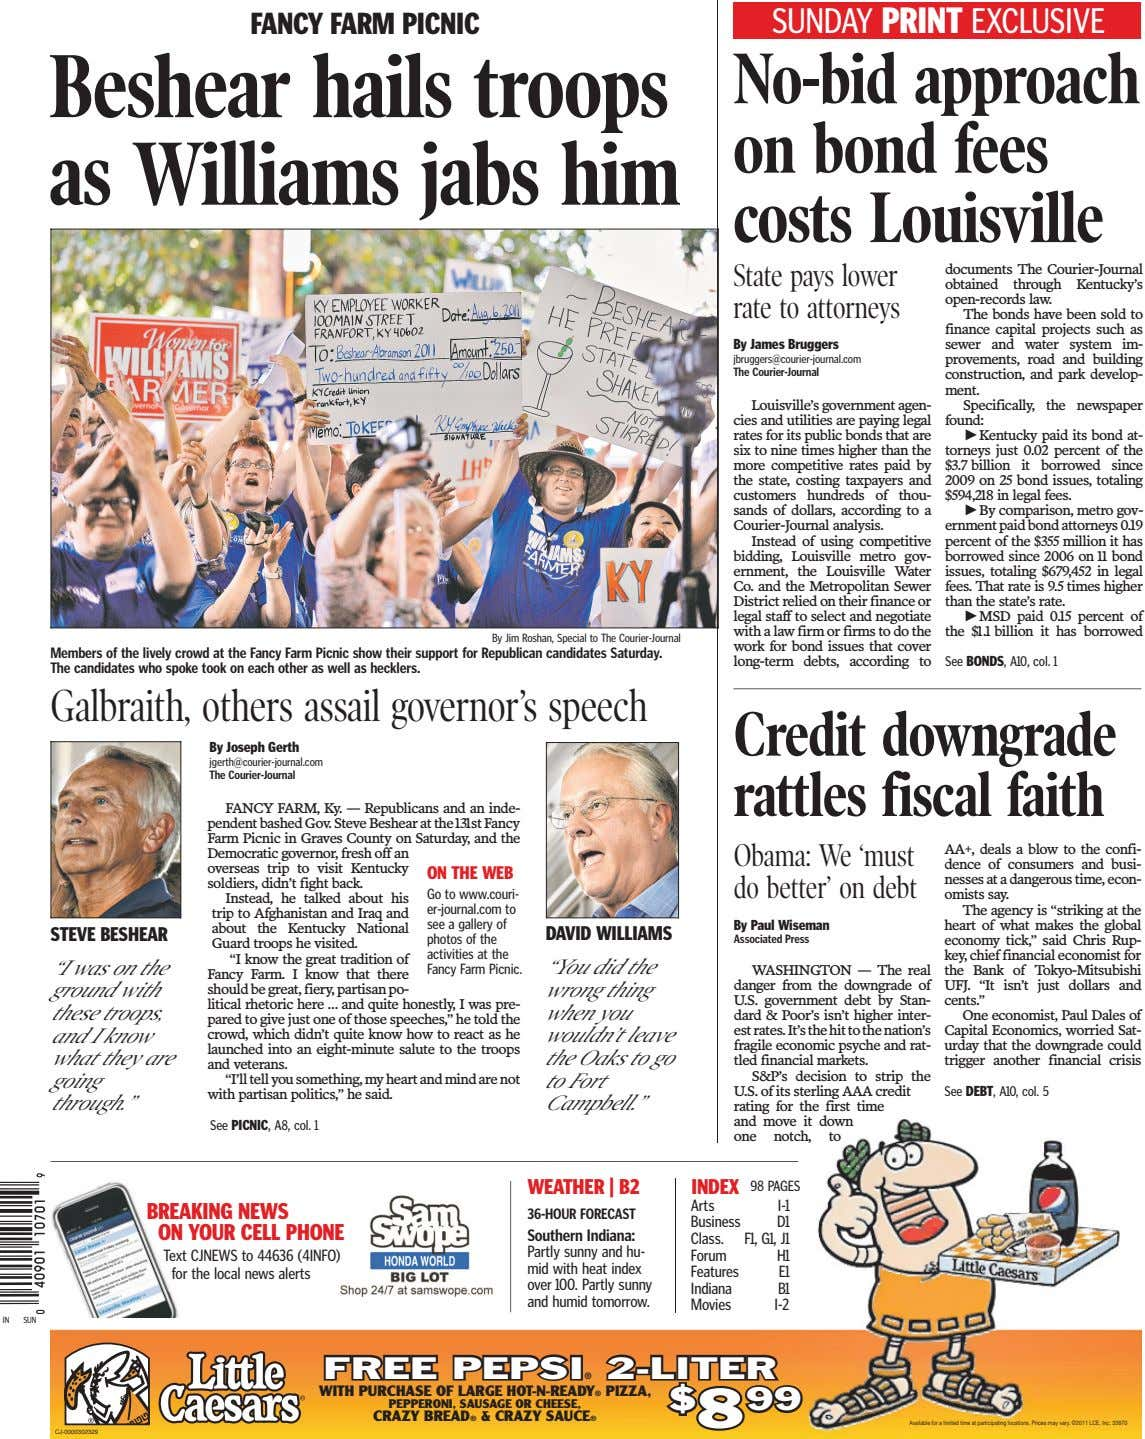 FA NCY FA RM PICNIC SUNDAY PRINT EXCLUSIVE Beshear hails troops as Williams jabs him